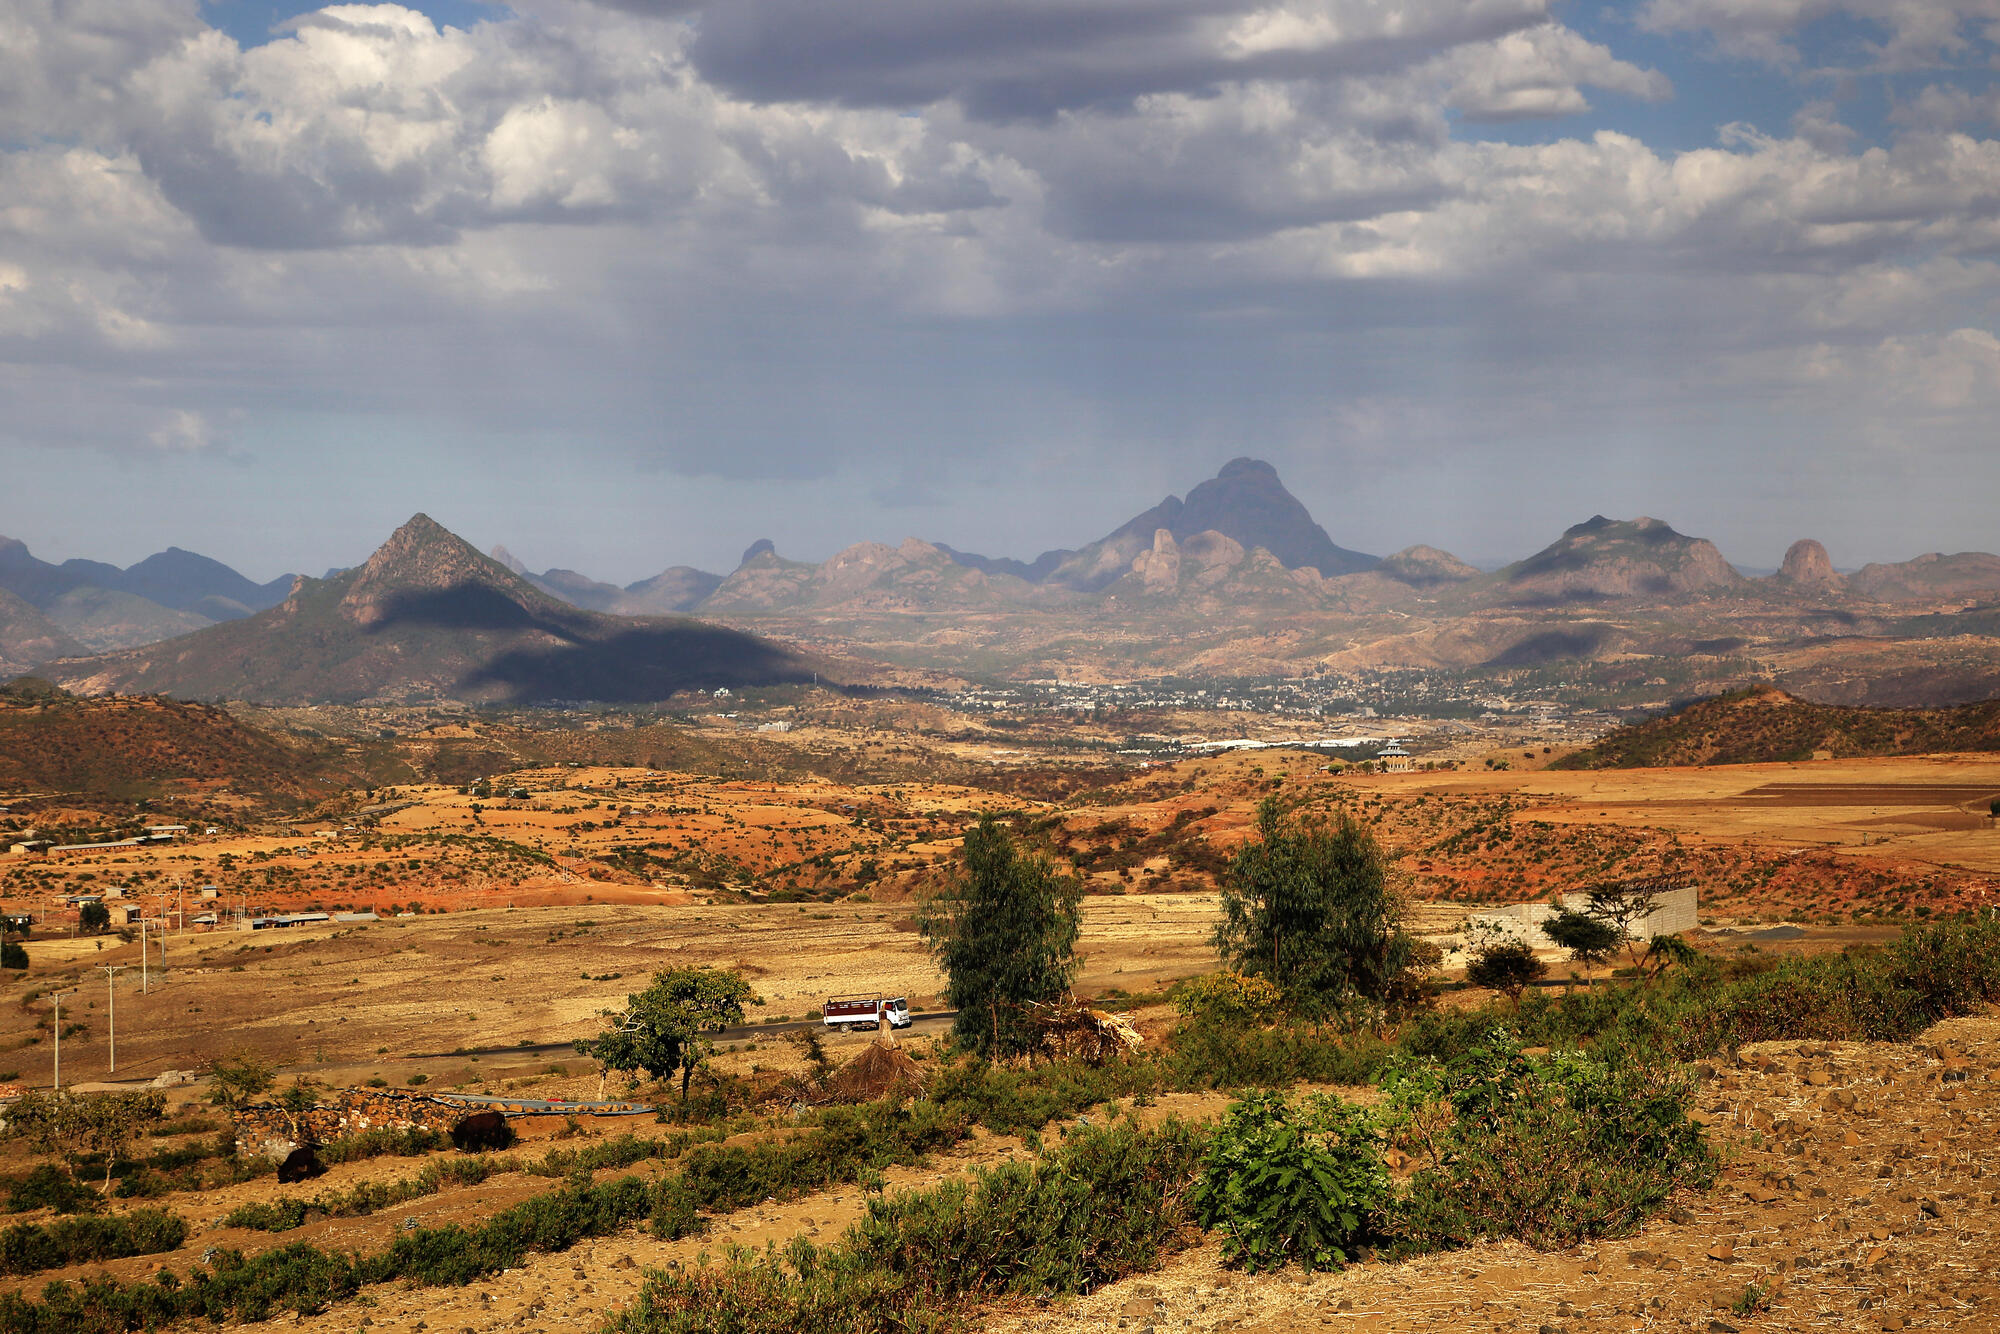 Photostory: Reaching the forgotten communities of the Tigray crisis